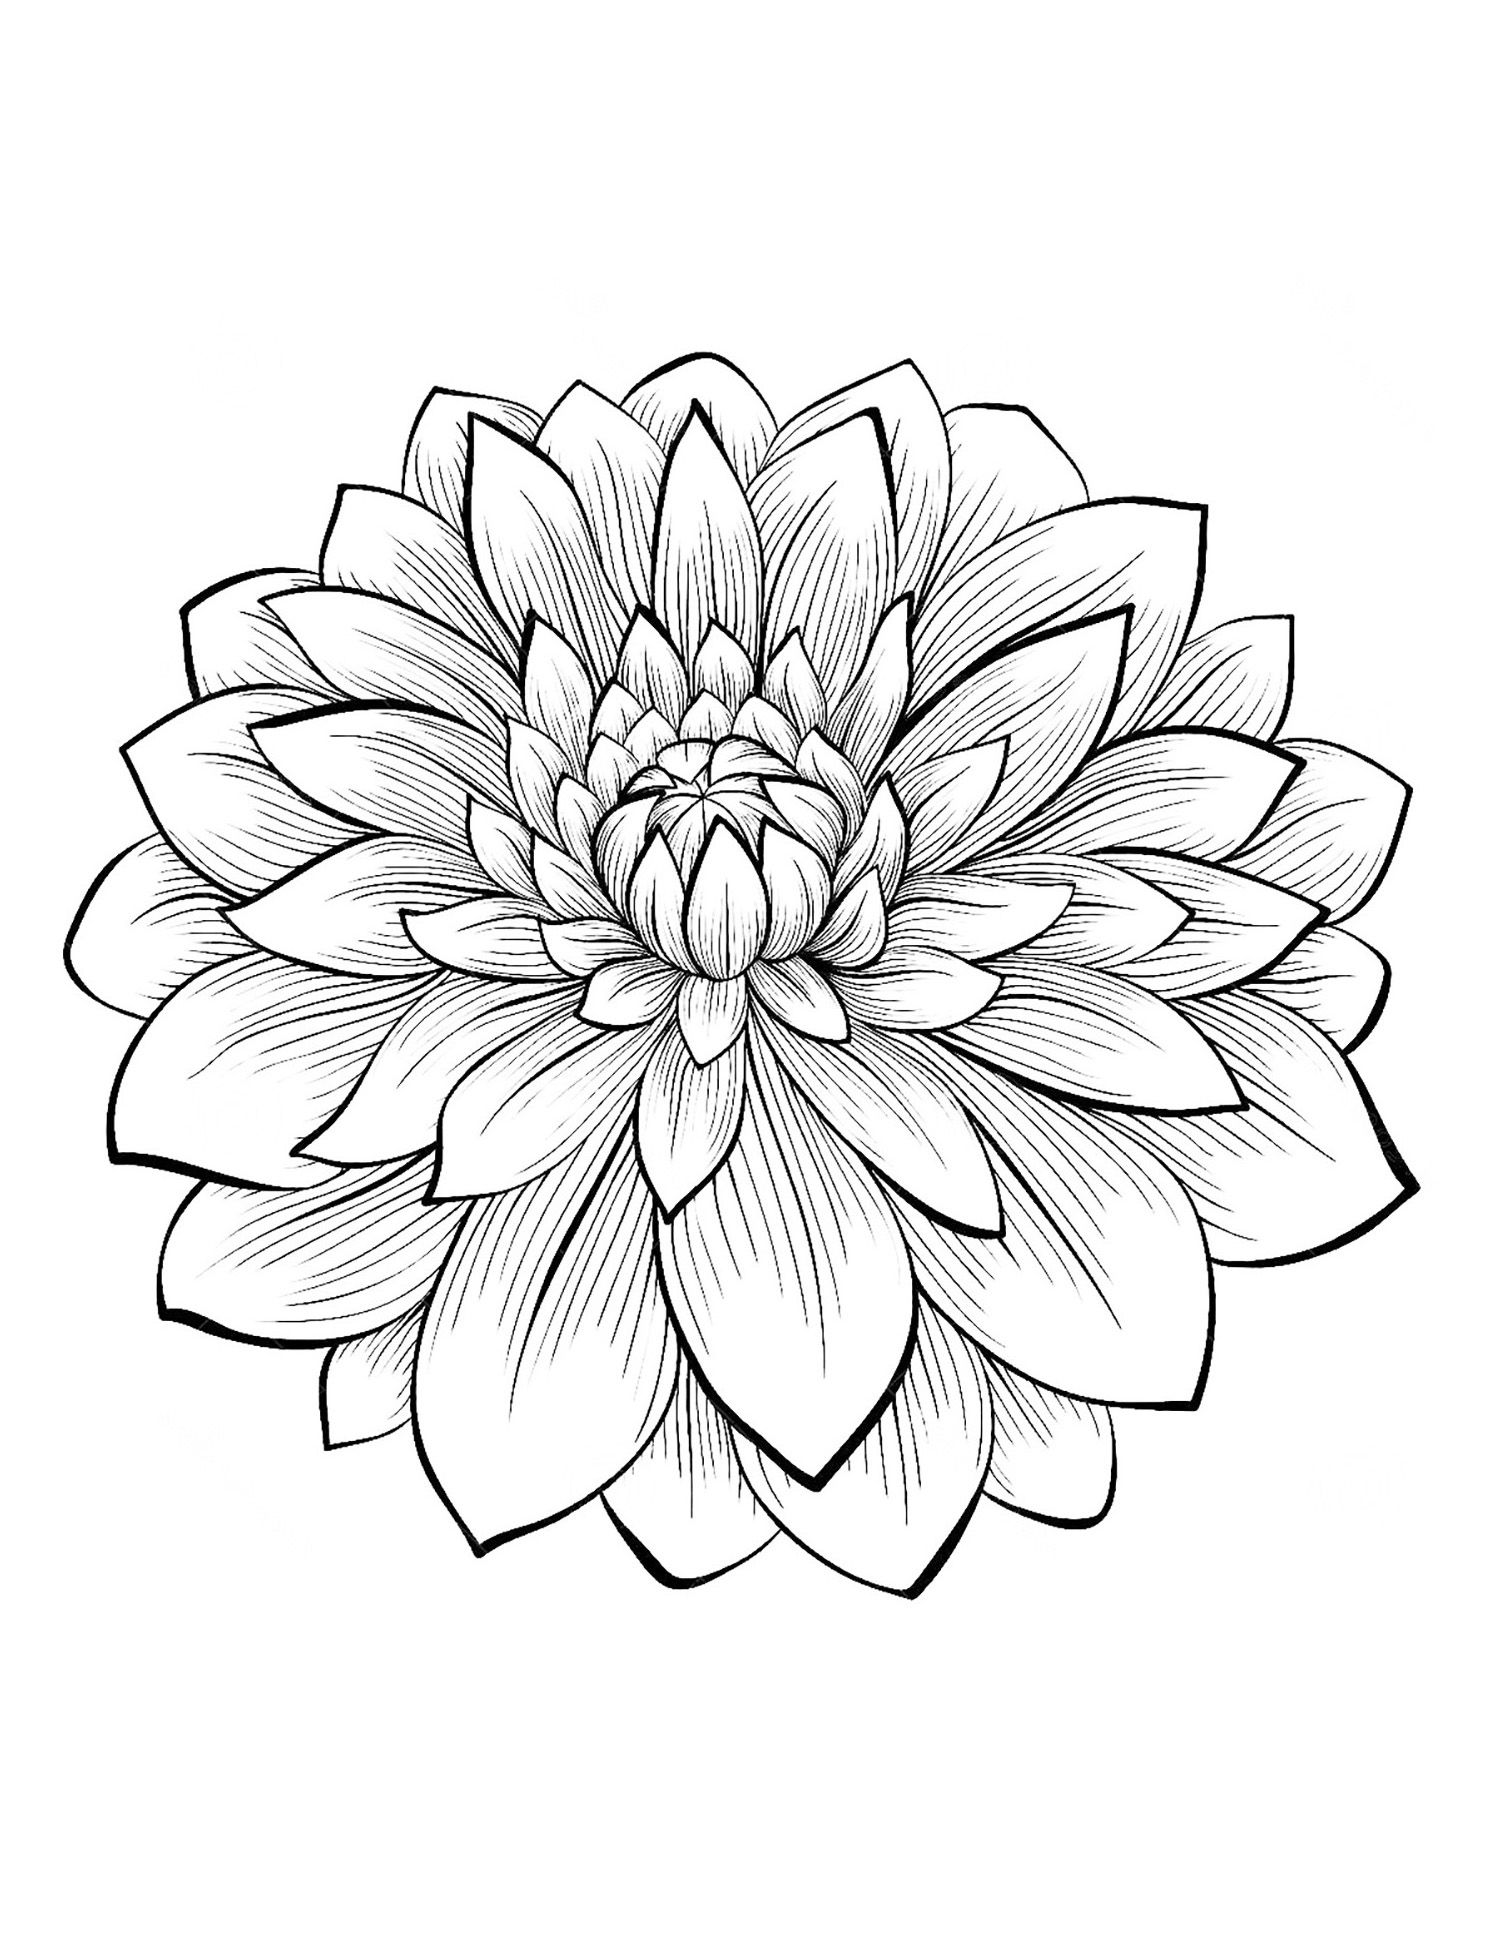 Dahlia Flower Flowers Vegetation Coloring Pages For Adults